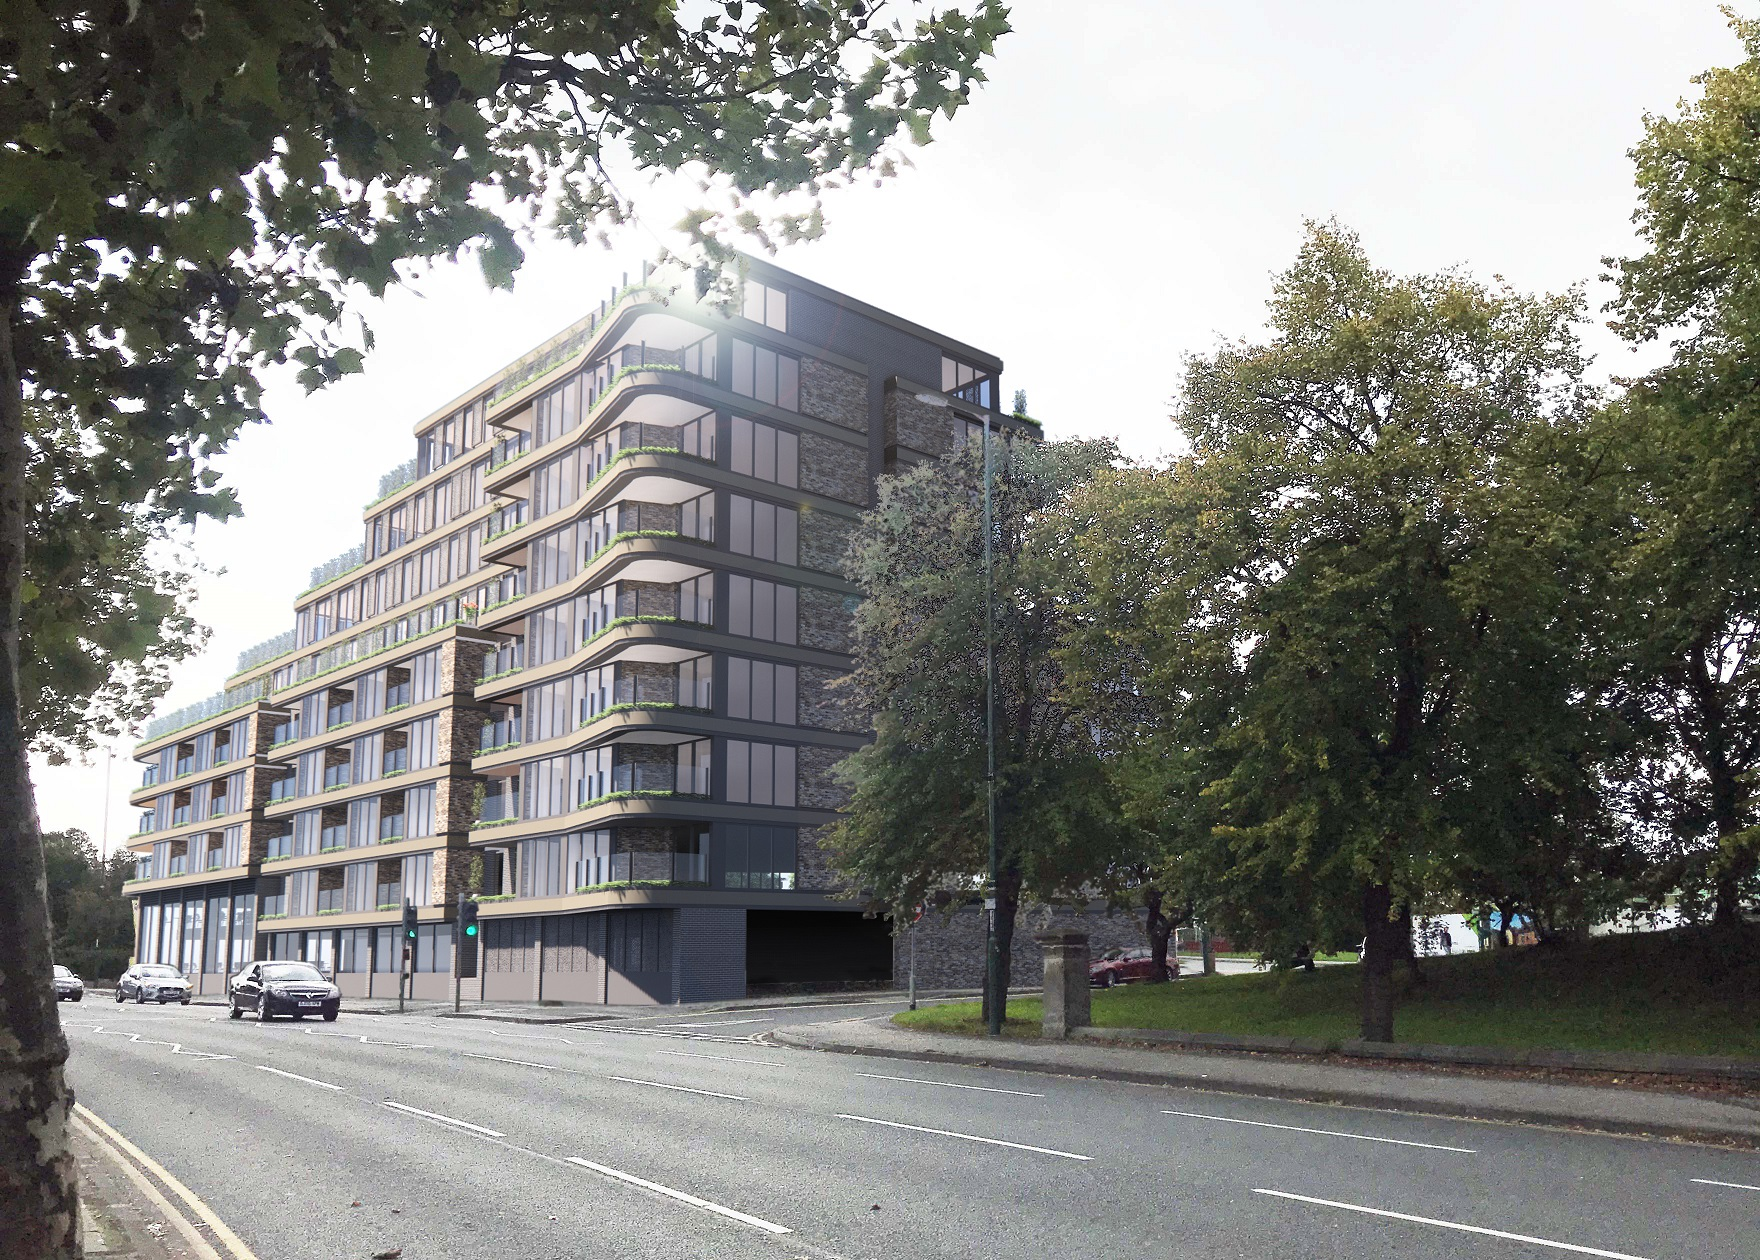 Landmark London Road Scheme Plans Submitted